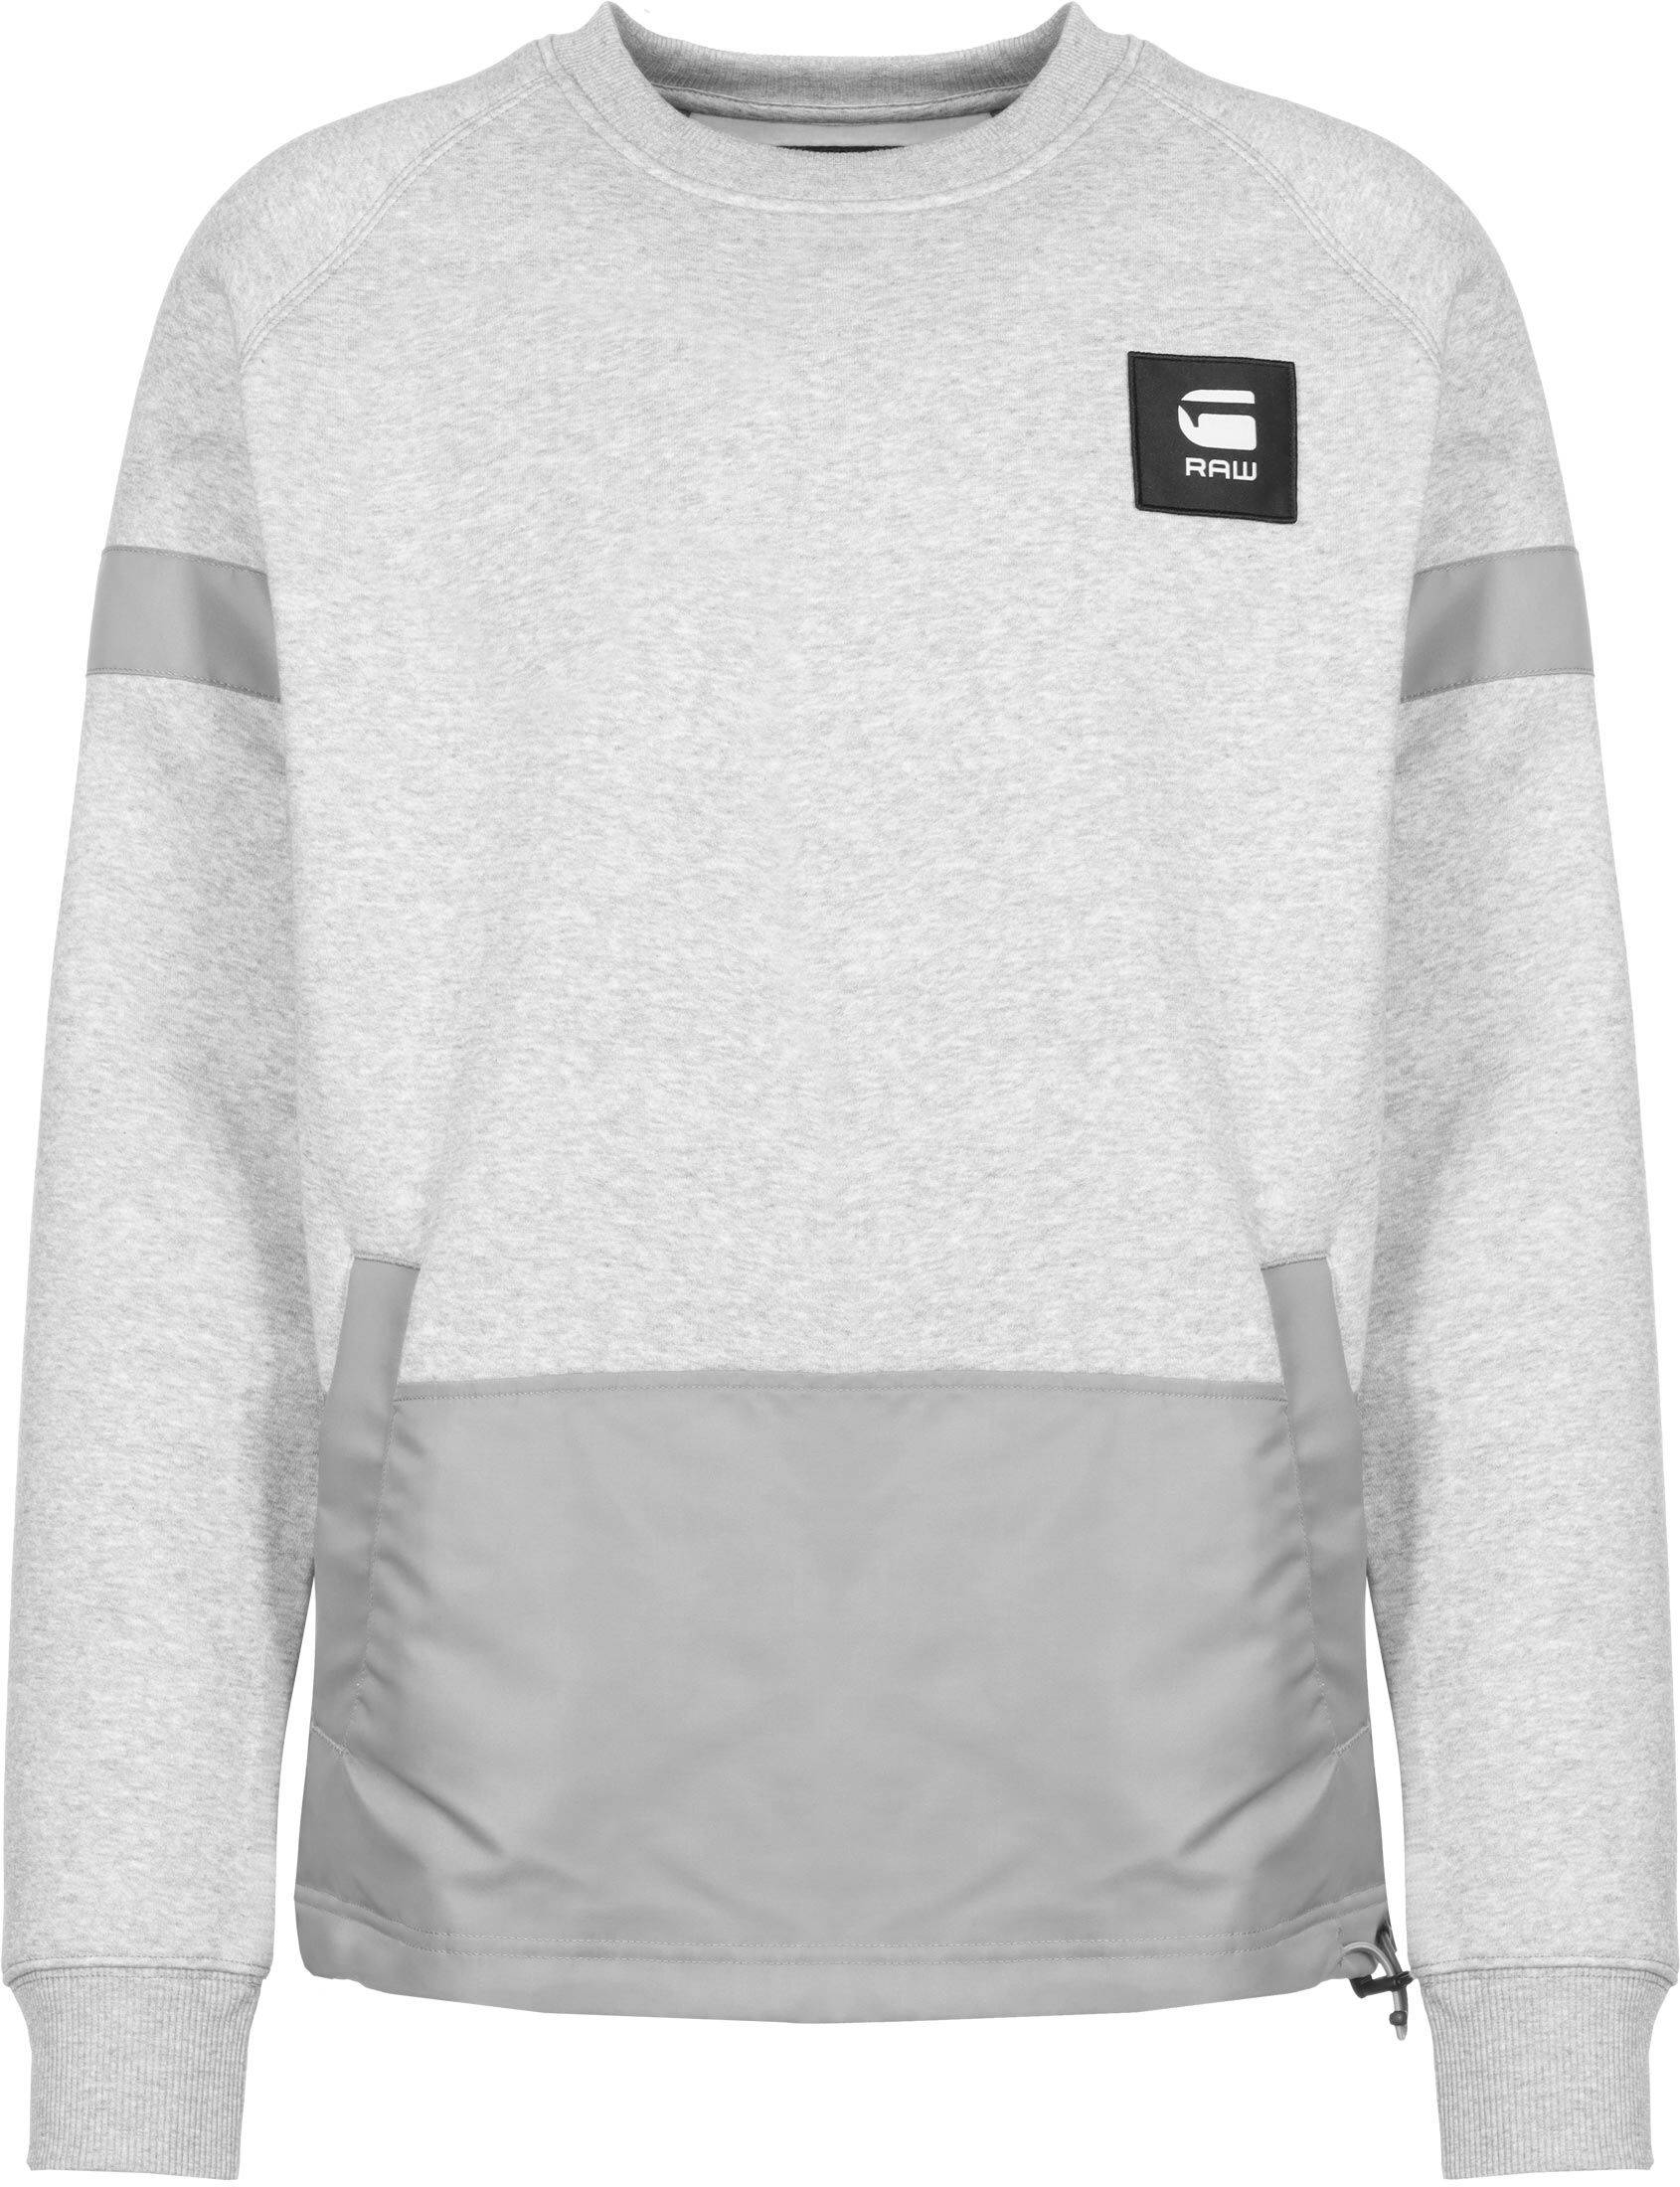 G-Star RAW G-Star Prisoner Mix, taille L, homme, gris chiné